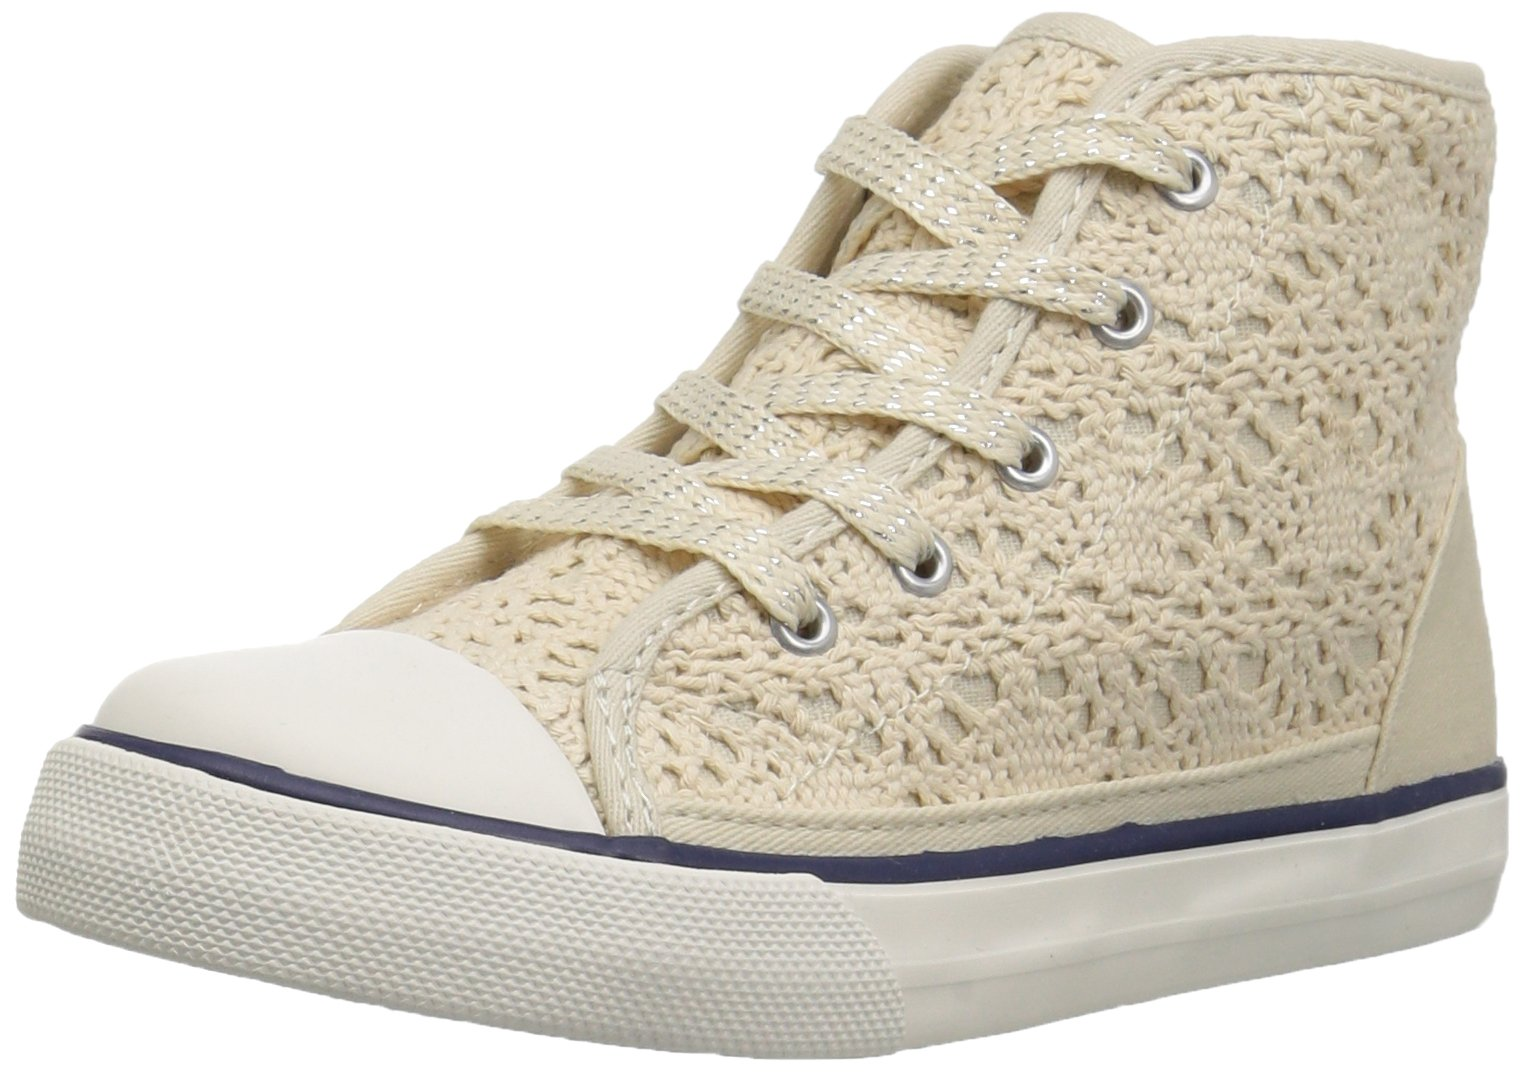 The Children's Place Kids' Sneaker,Ivory-BG Lace Rockstar,3 M US Little Kid